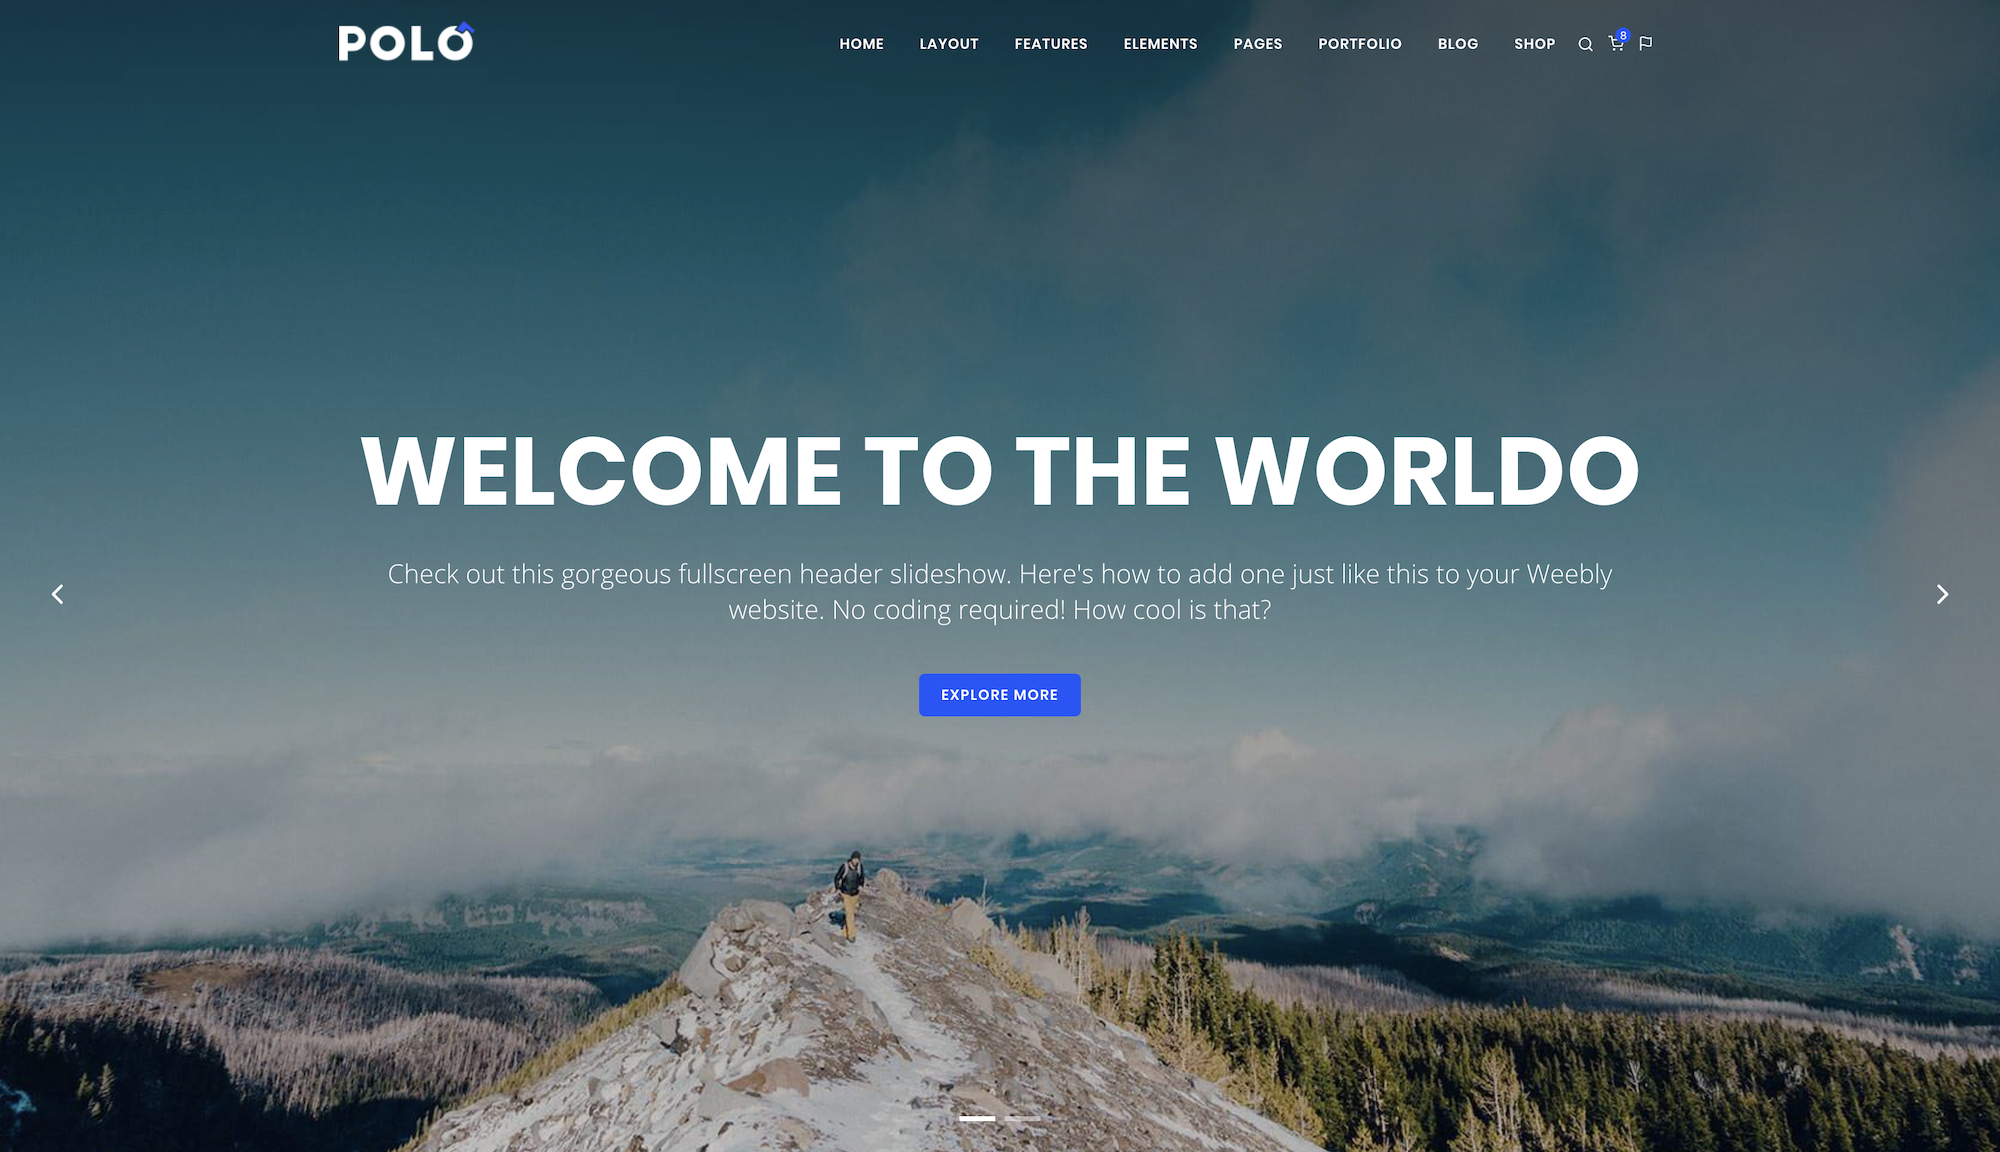 How to Add a Gorgeous Header Slideshow to Your Site